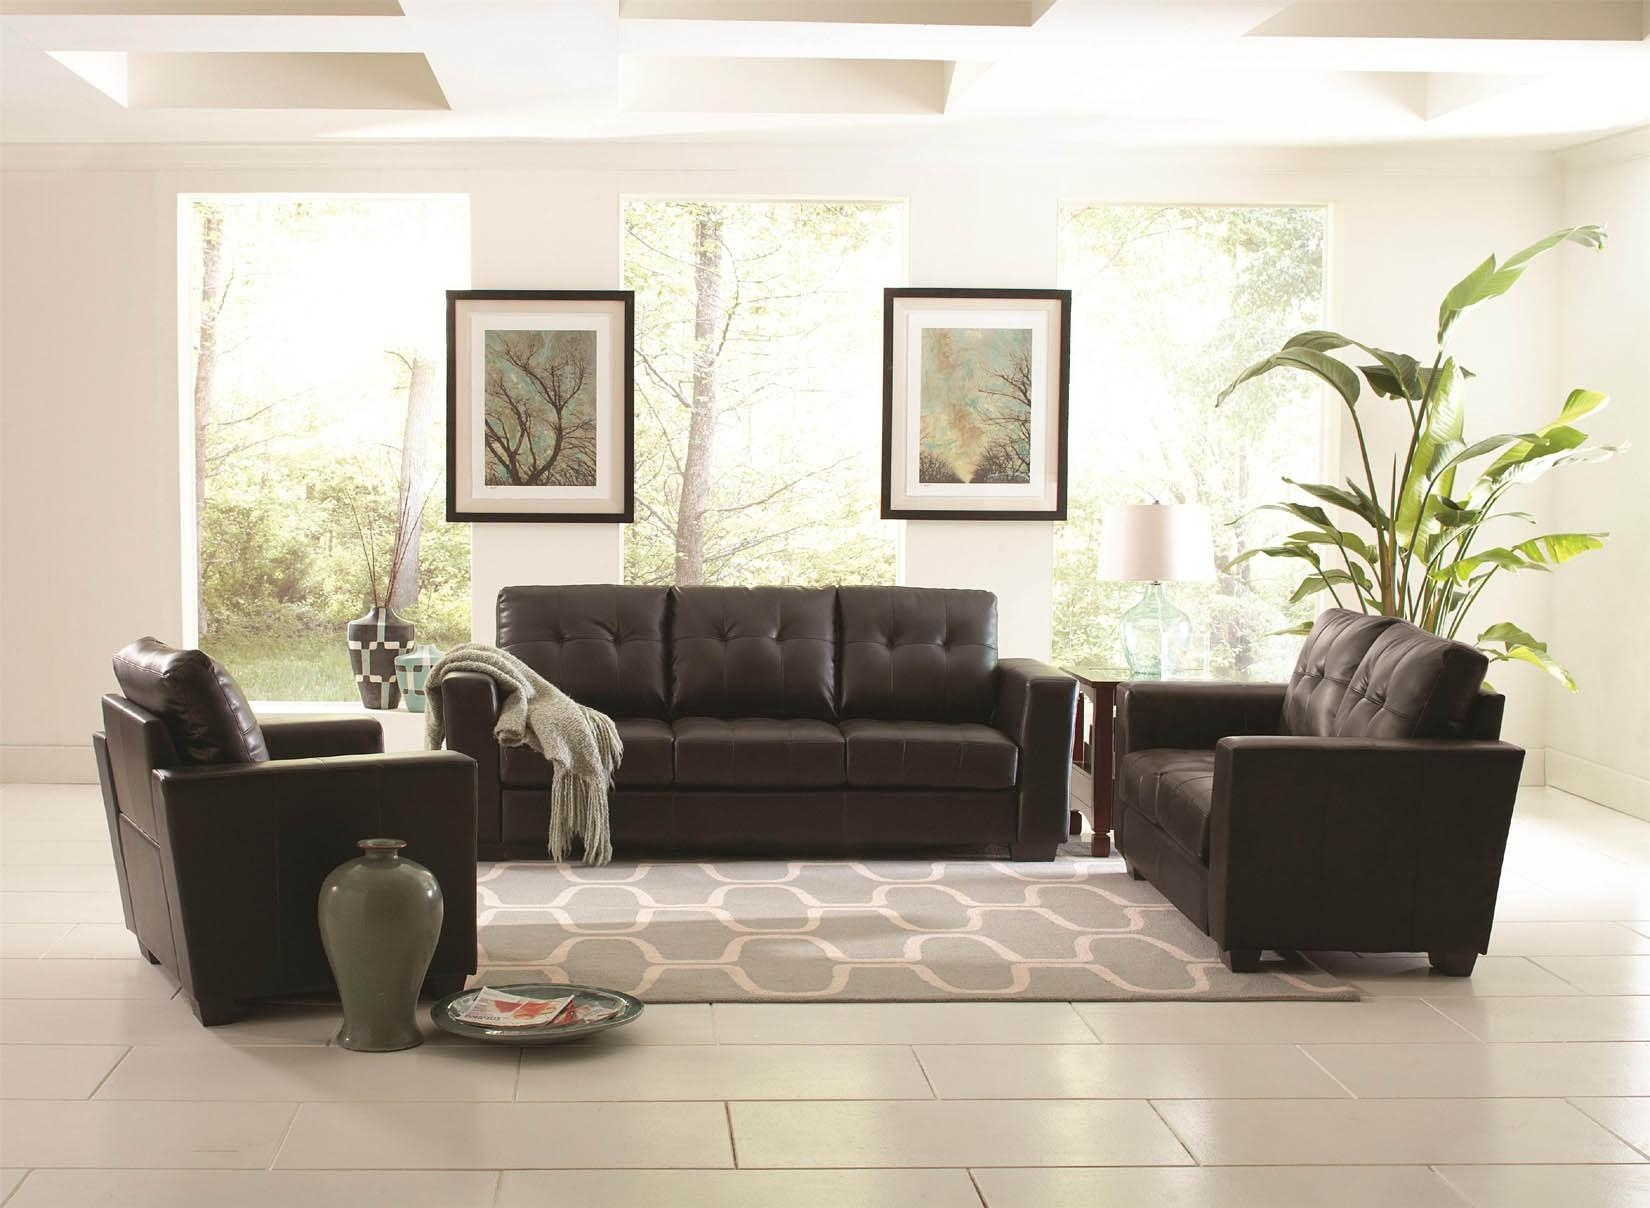 Black Sofa Decor 1000 Ideas About Sectional Sofas On Pinterest Big Intended For Black Sofas Decors (Image 12 of 20)